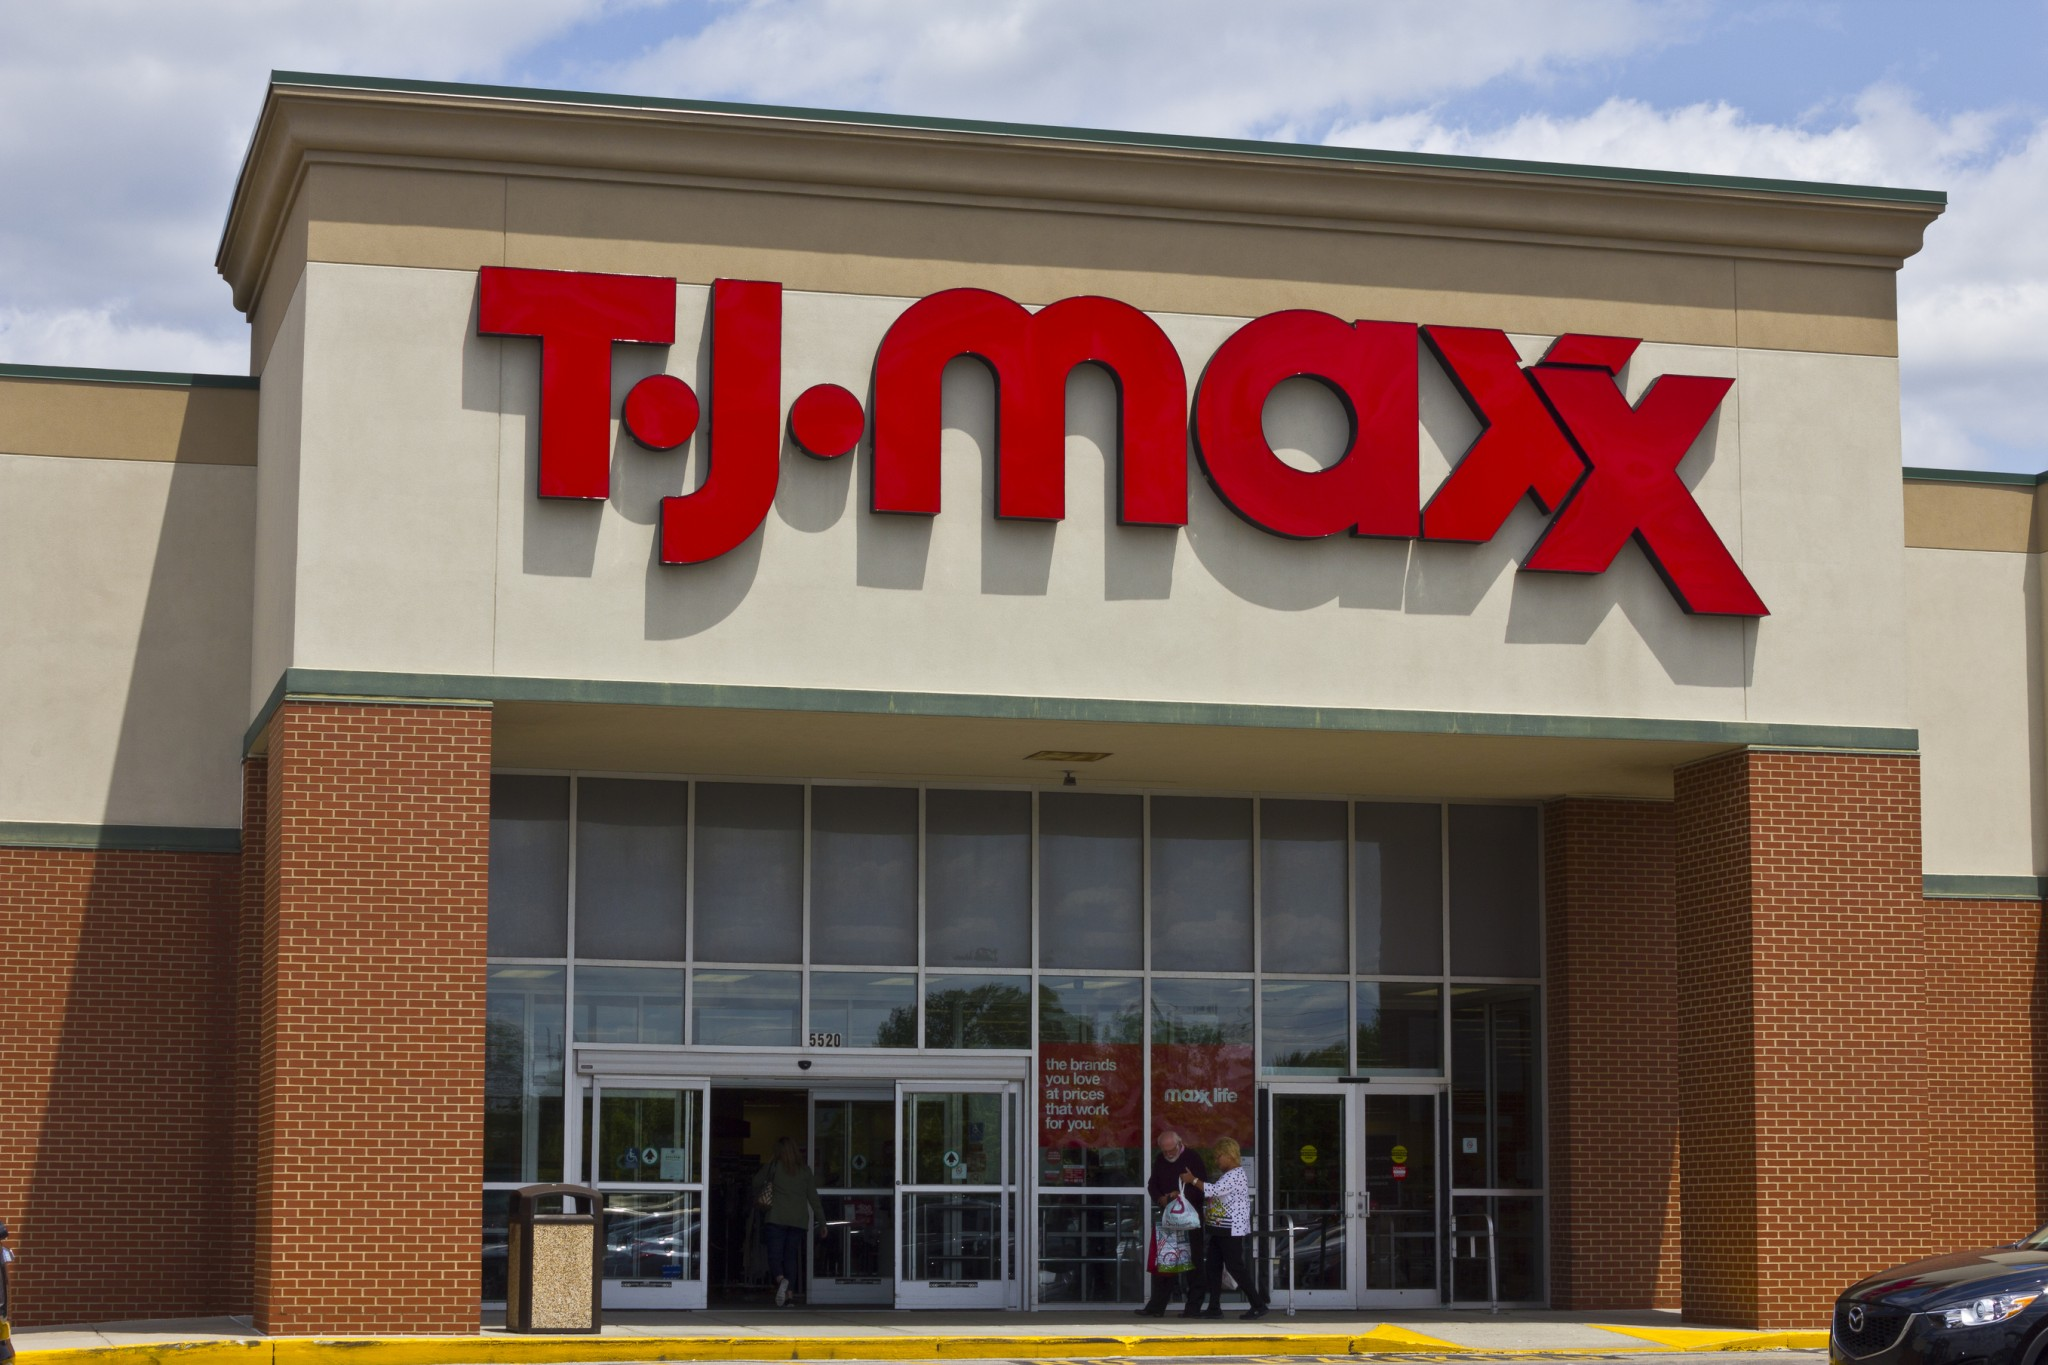 177ec2f8ec36 T.J. Maxx Store Guide: Find the Top Deals - NerdWallet